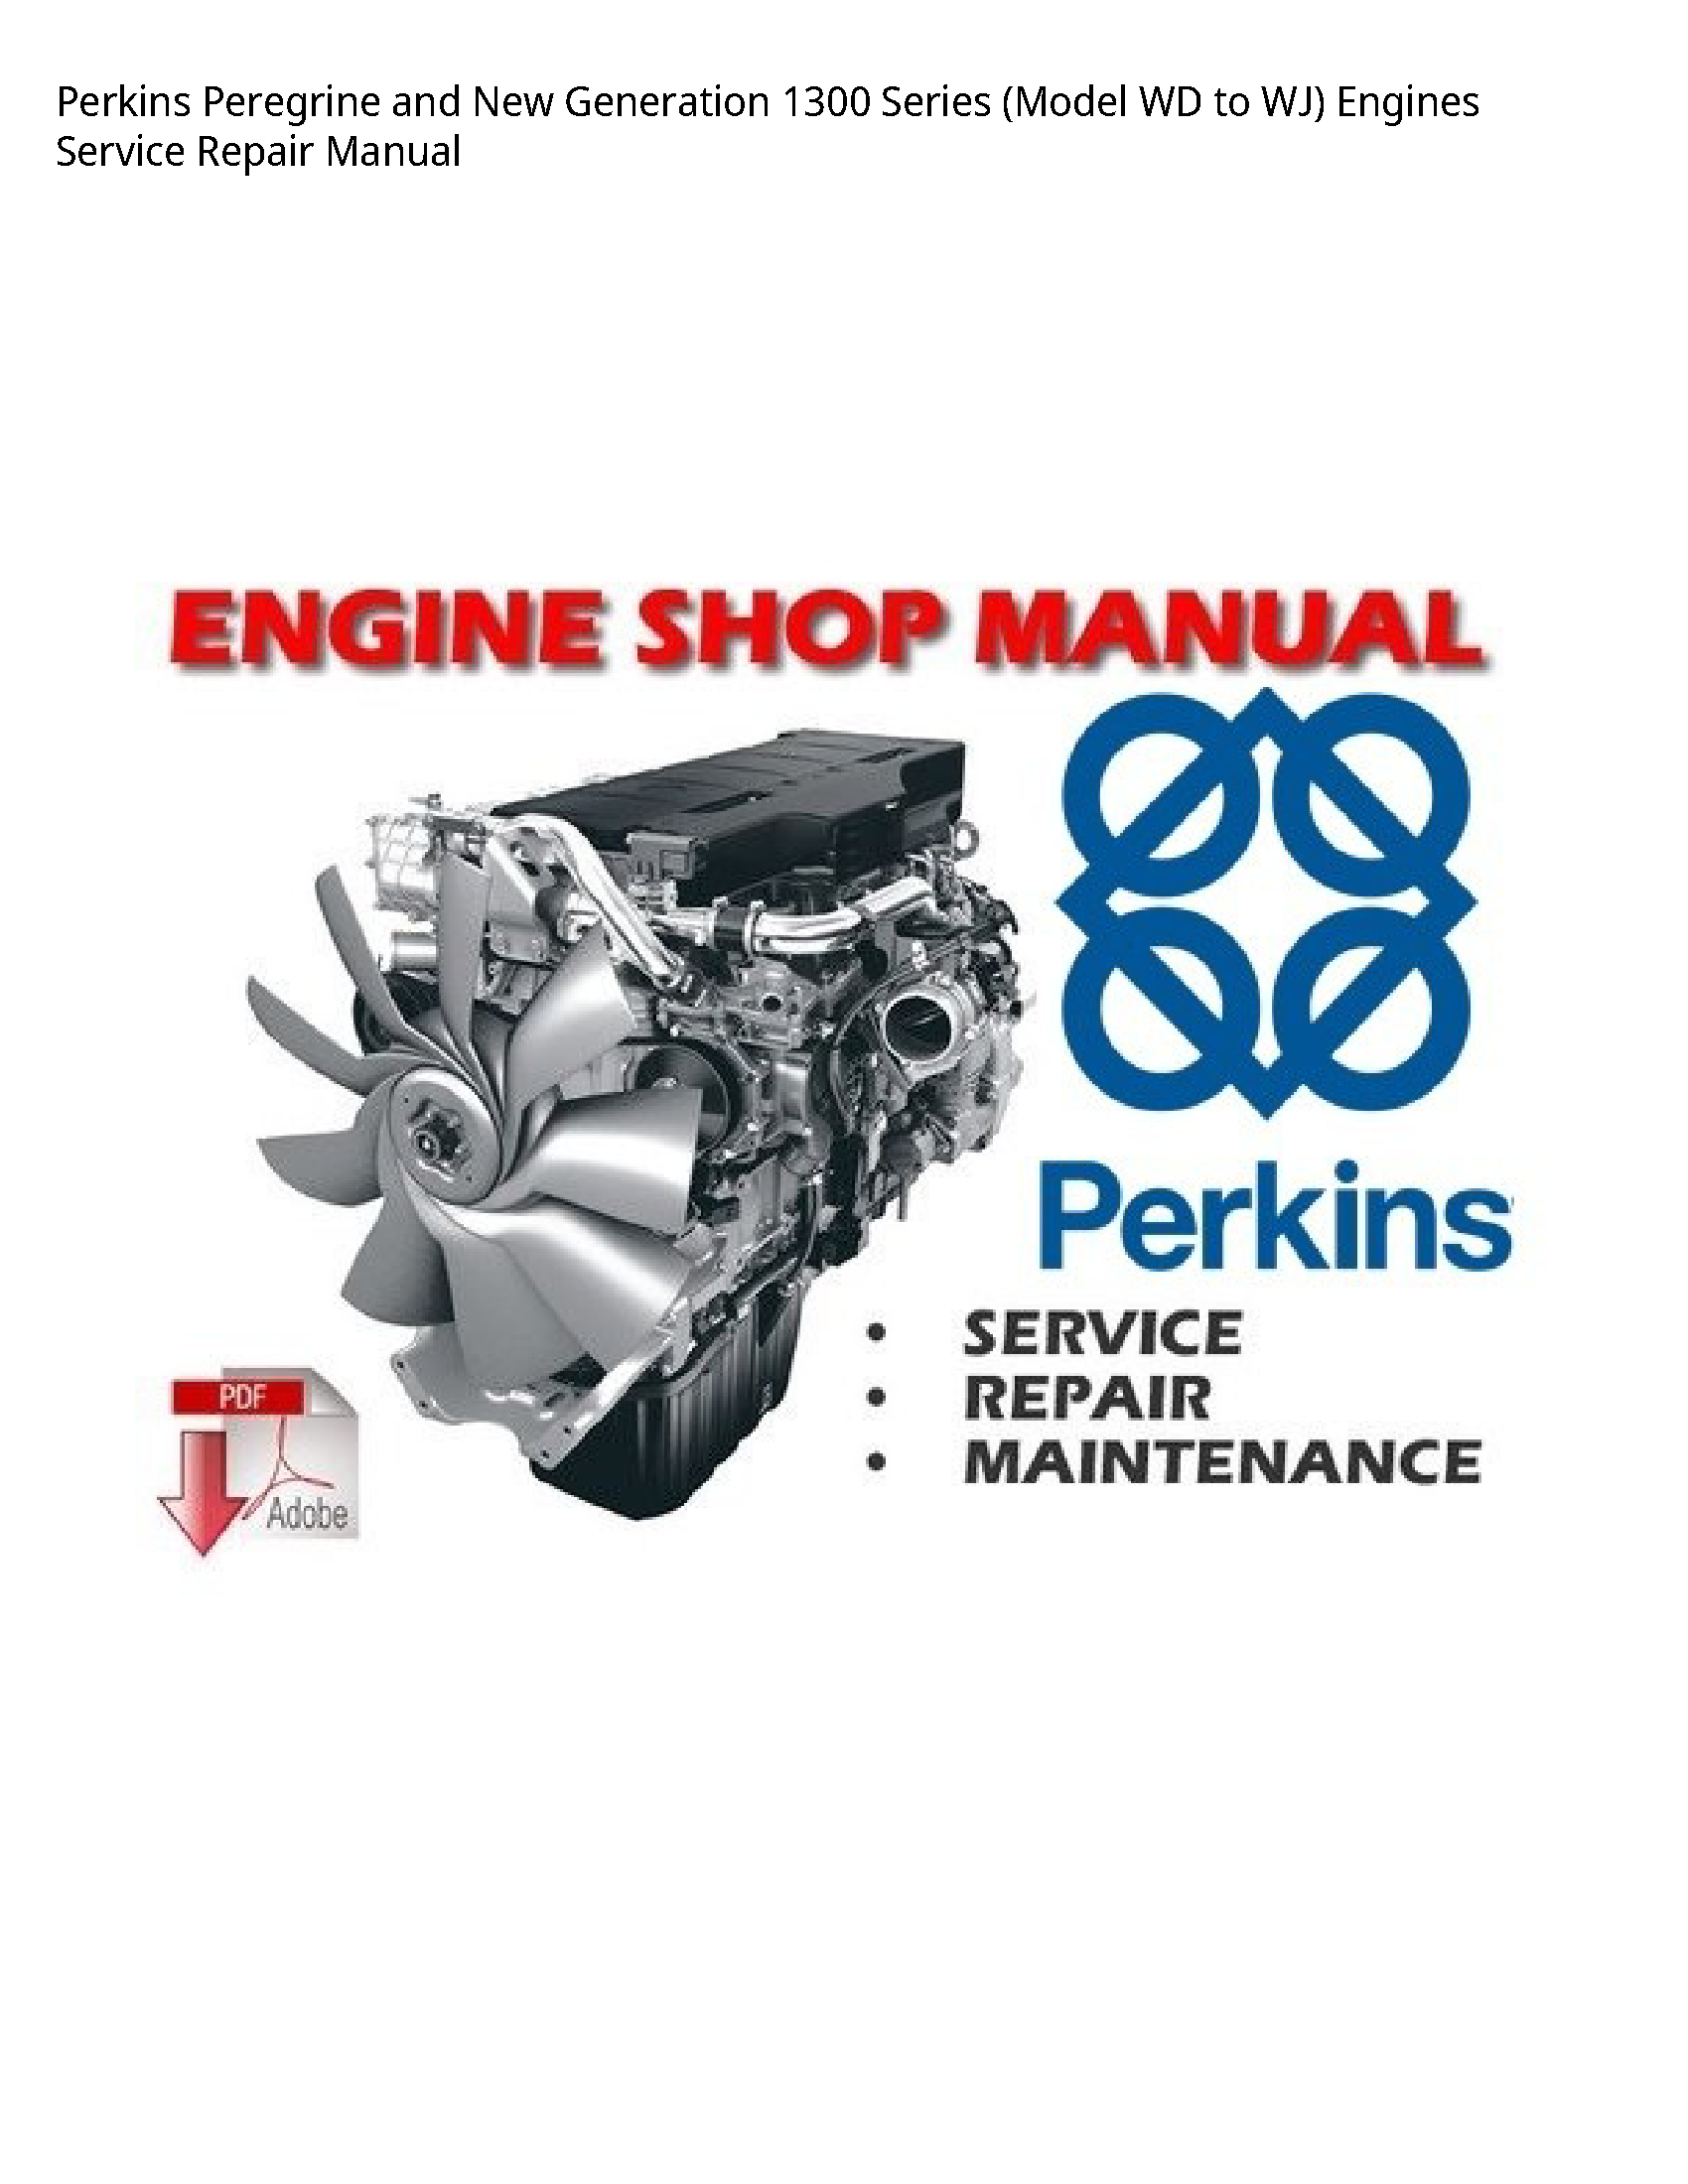 Perkins 1300 Peregrine  New Generation Series (Model WD to WJ) Engines manual